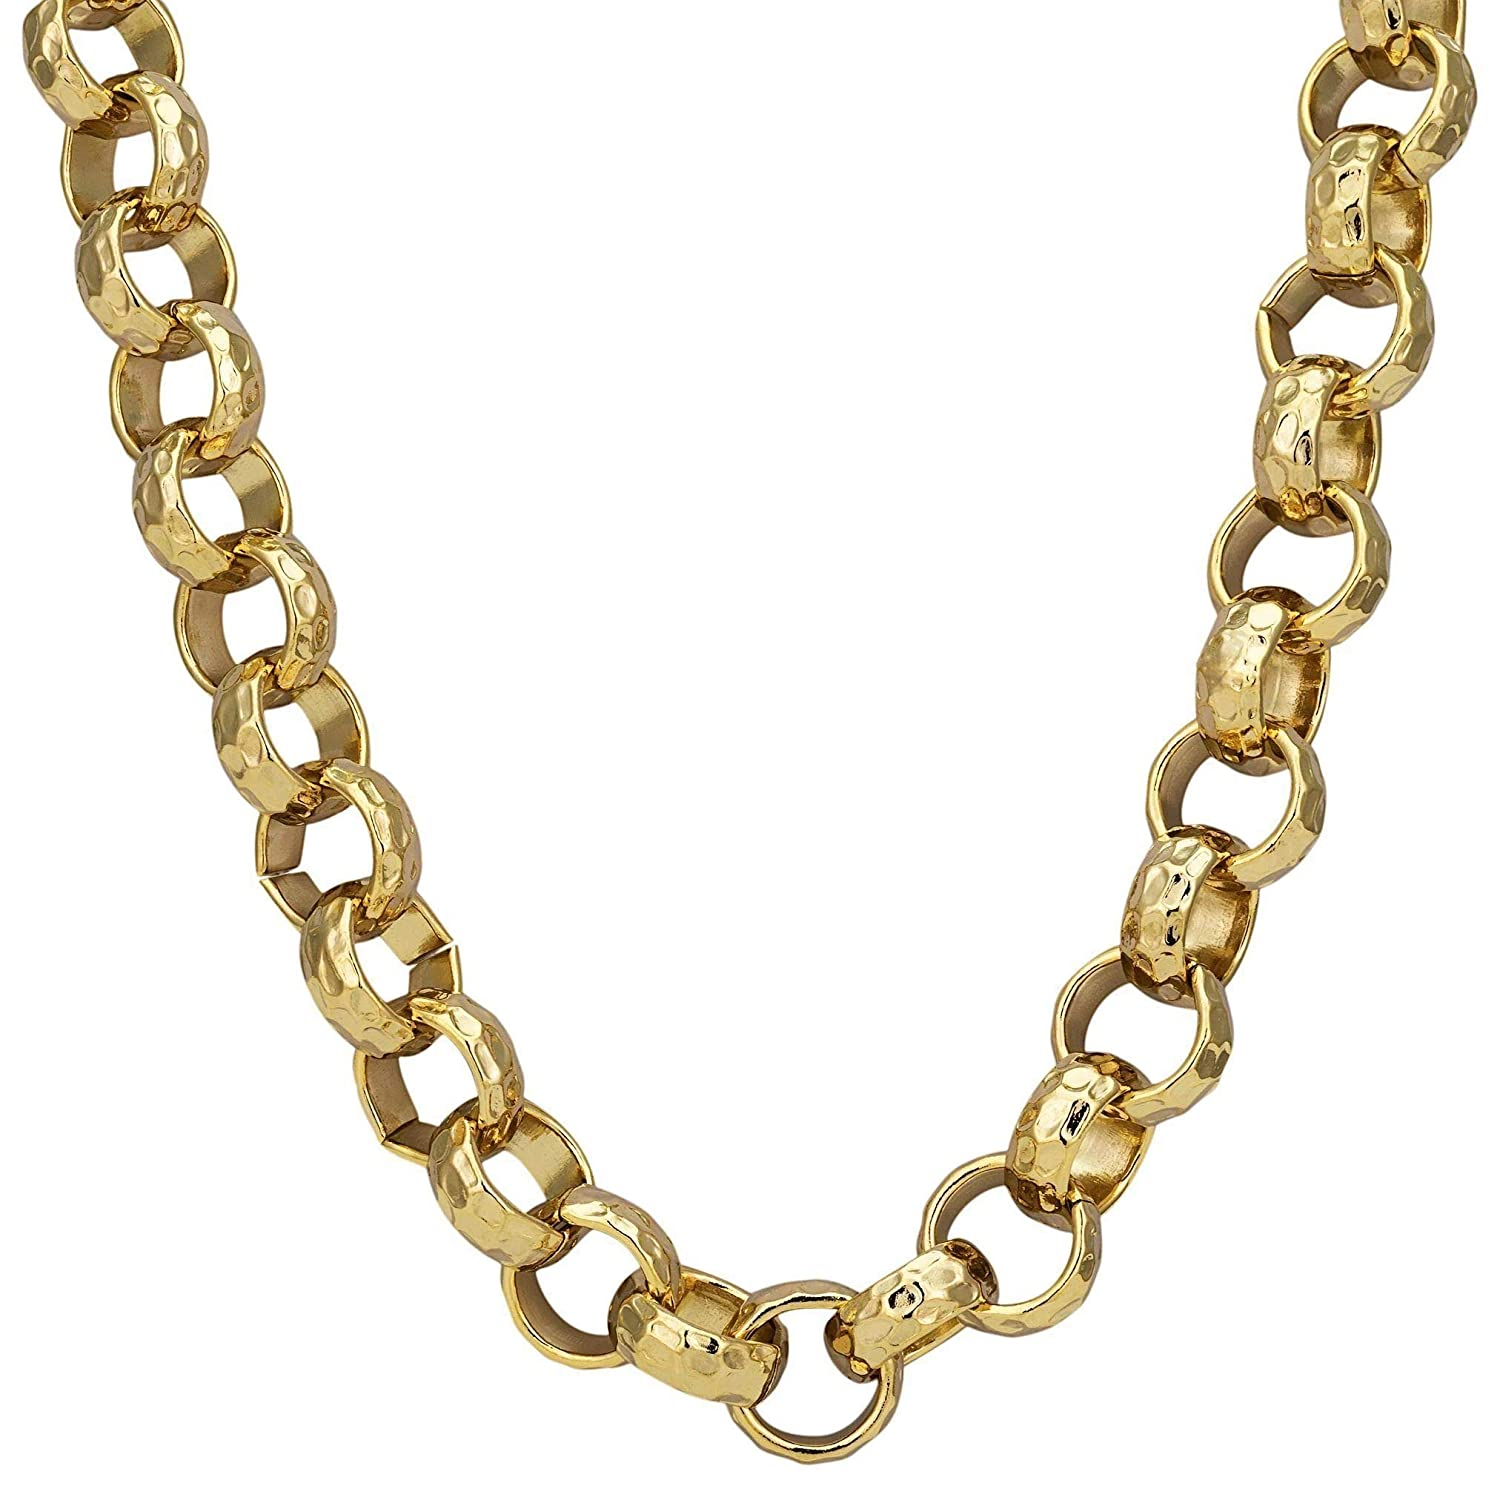 THE BLING KING Heavy Solid Yellow Gold Belcher Chain Necklace 9ct Gold Filled 12mm 20 24 30 inch Few Items Left